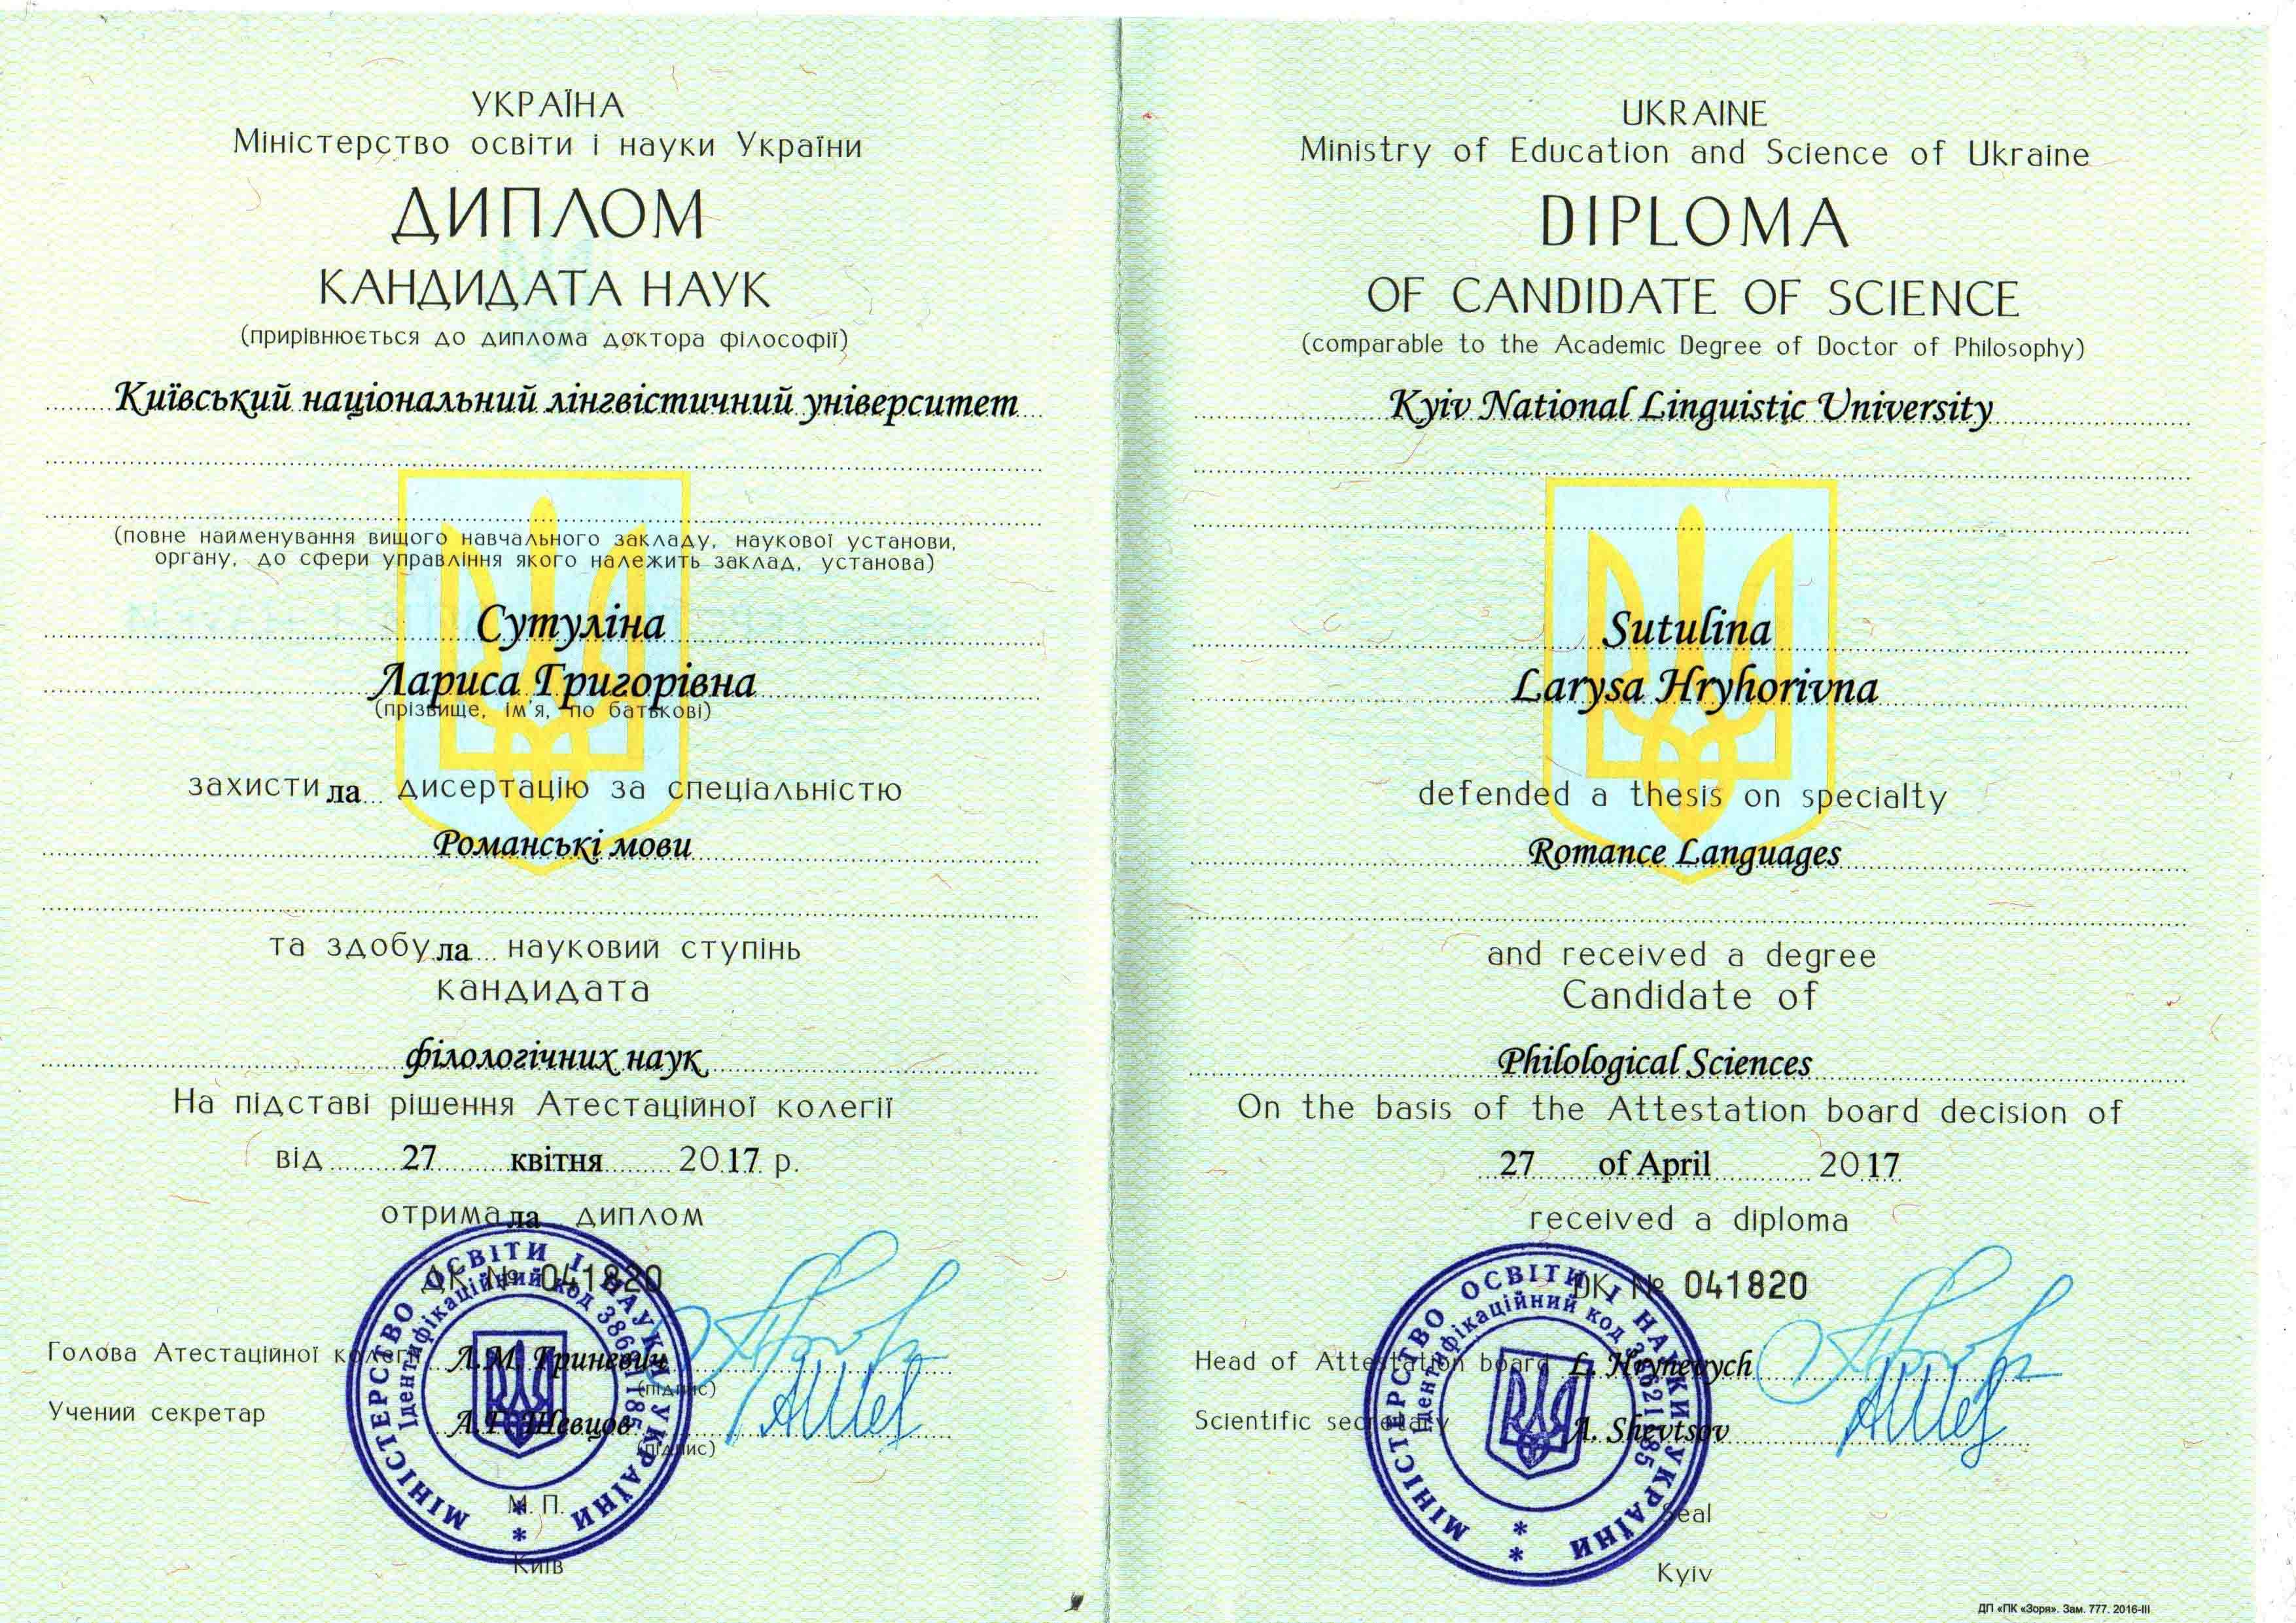 Diploma of candidate